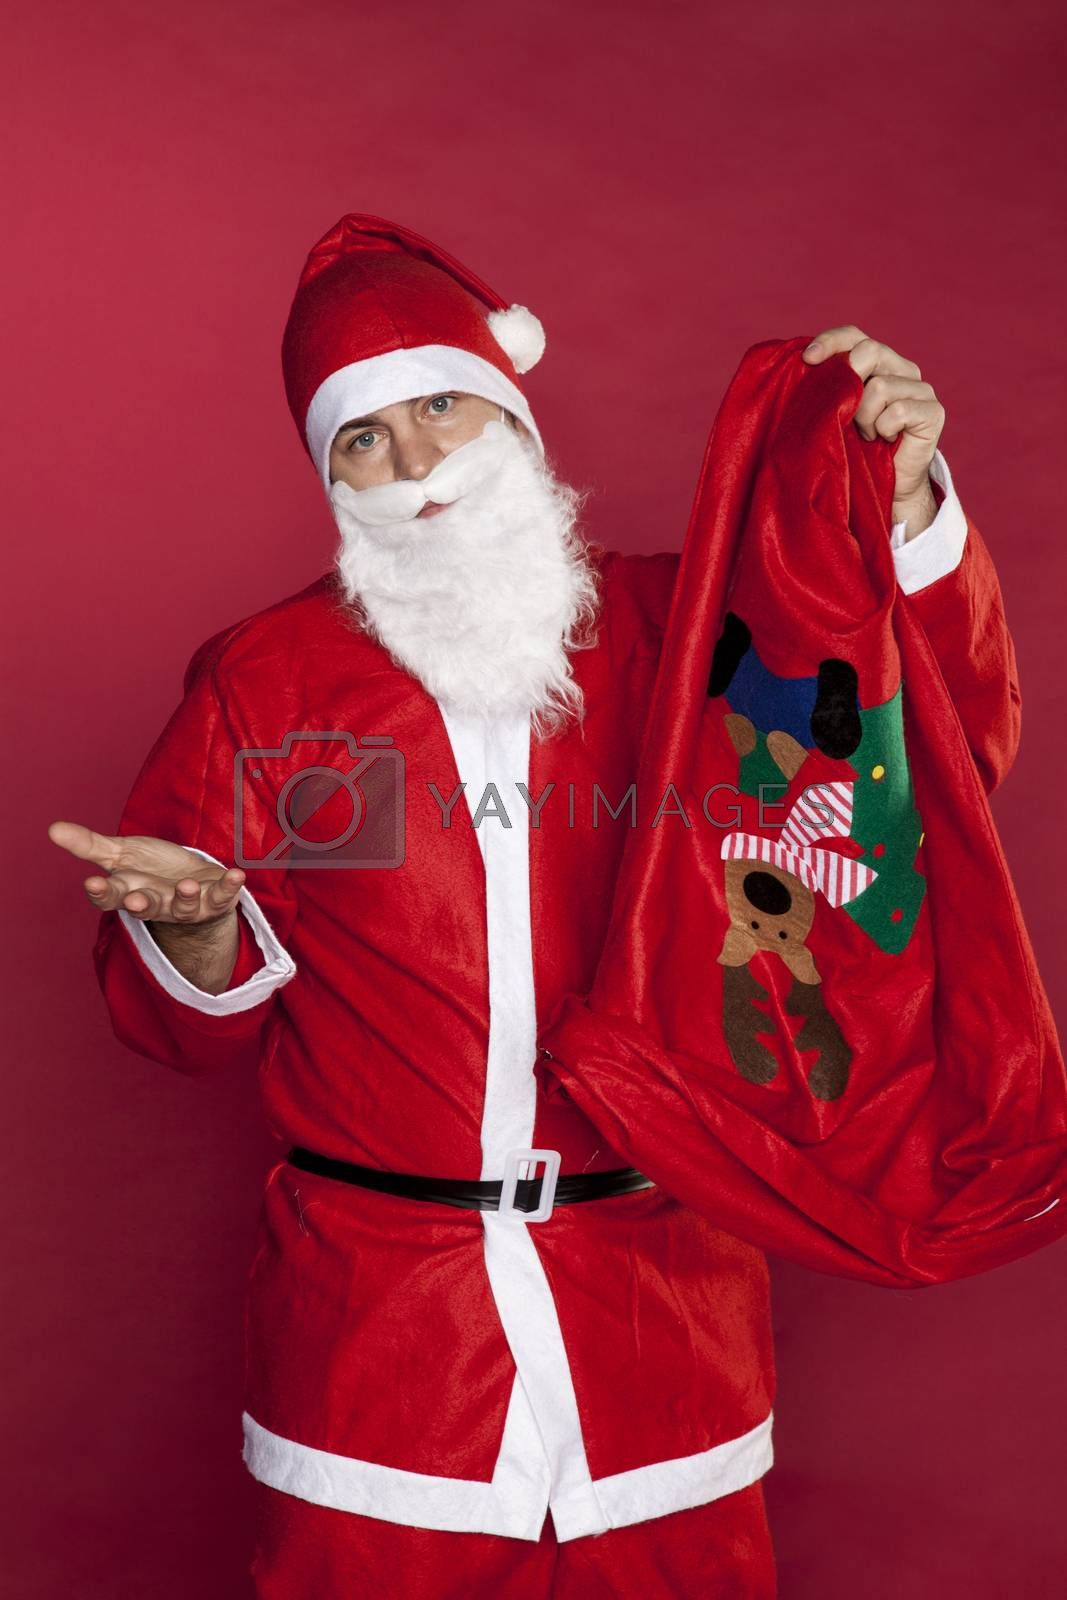 Santa Claus does not have any gifts